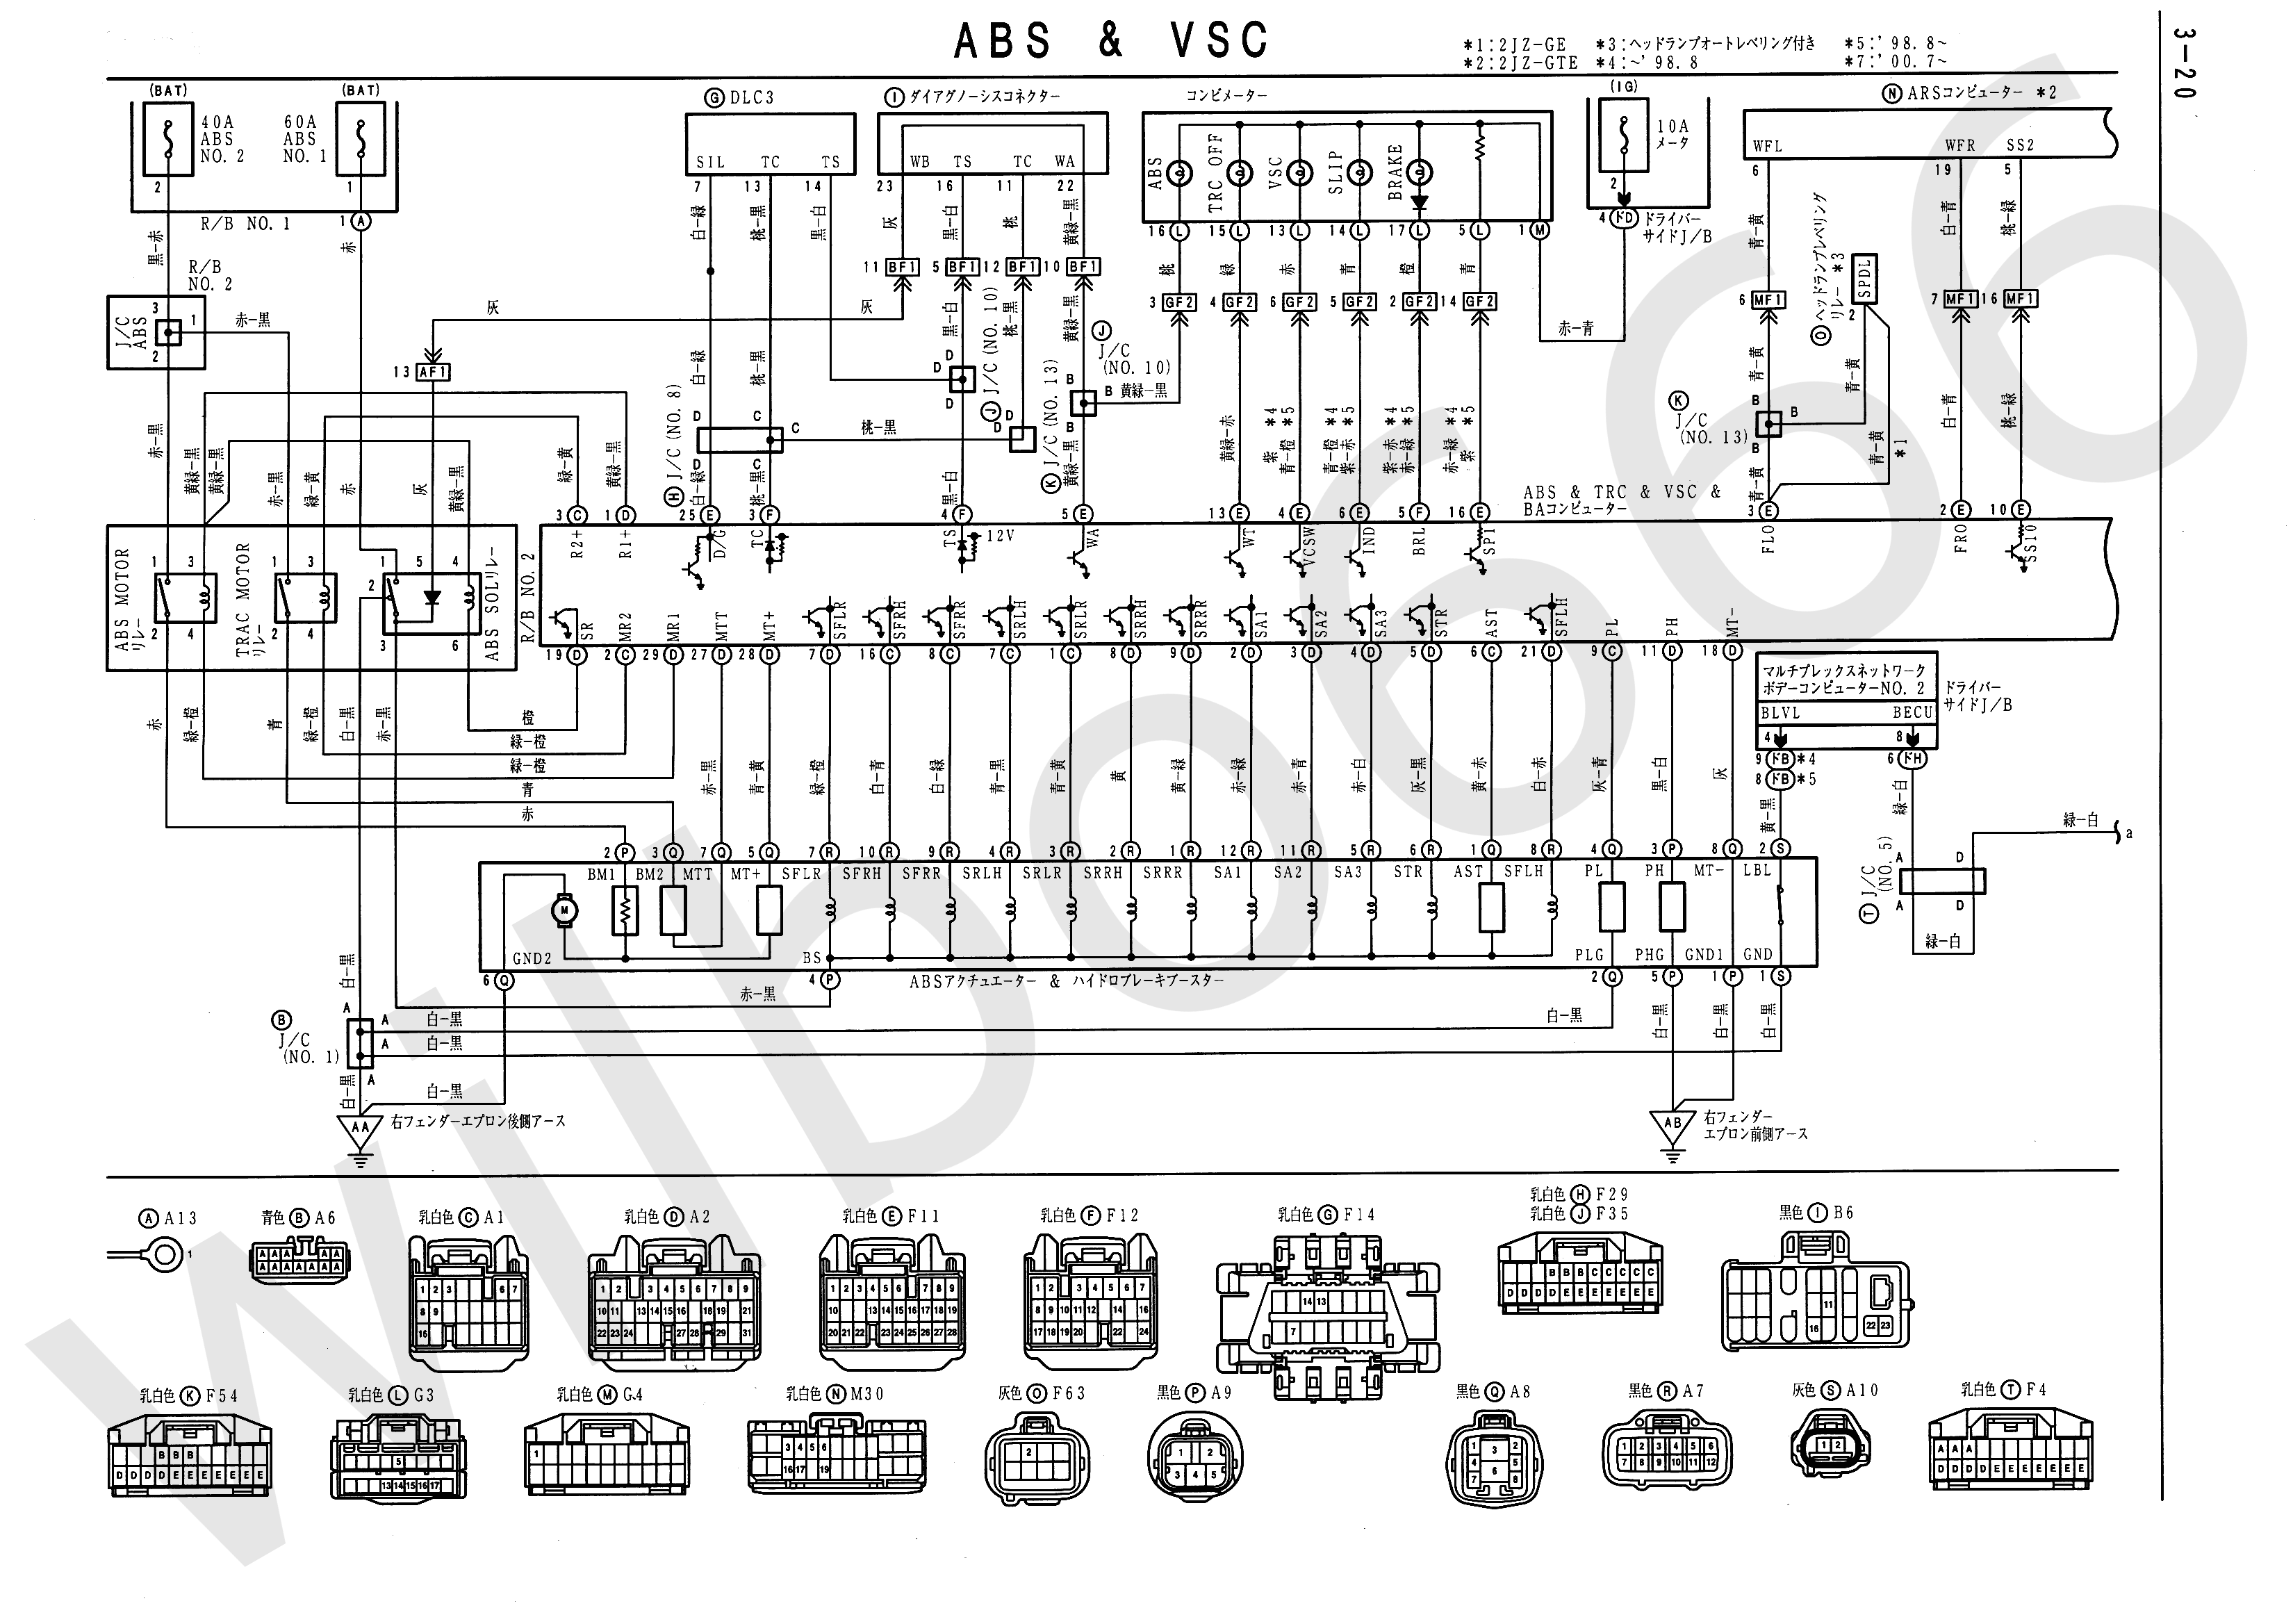 1991 Daihatsu Fuse Box | Wiring Diagram on